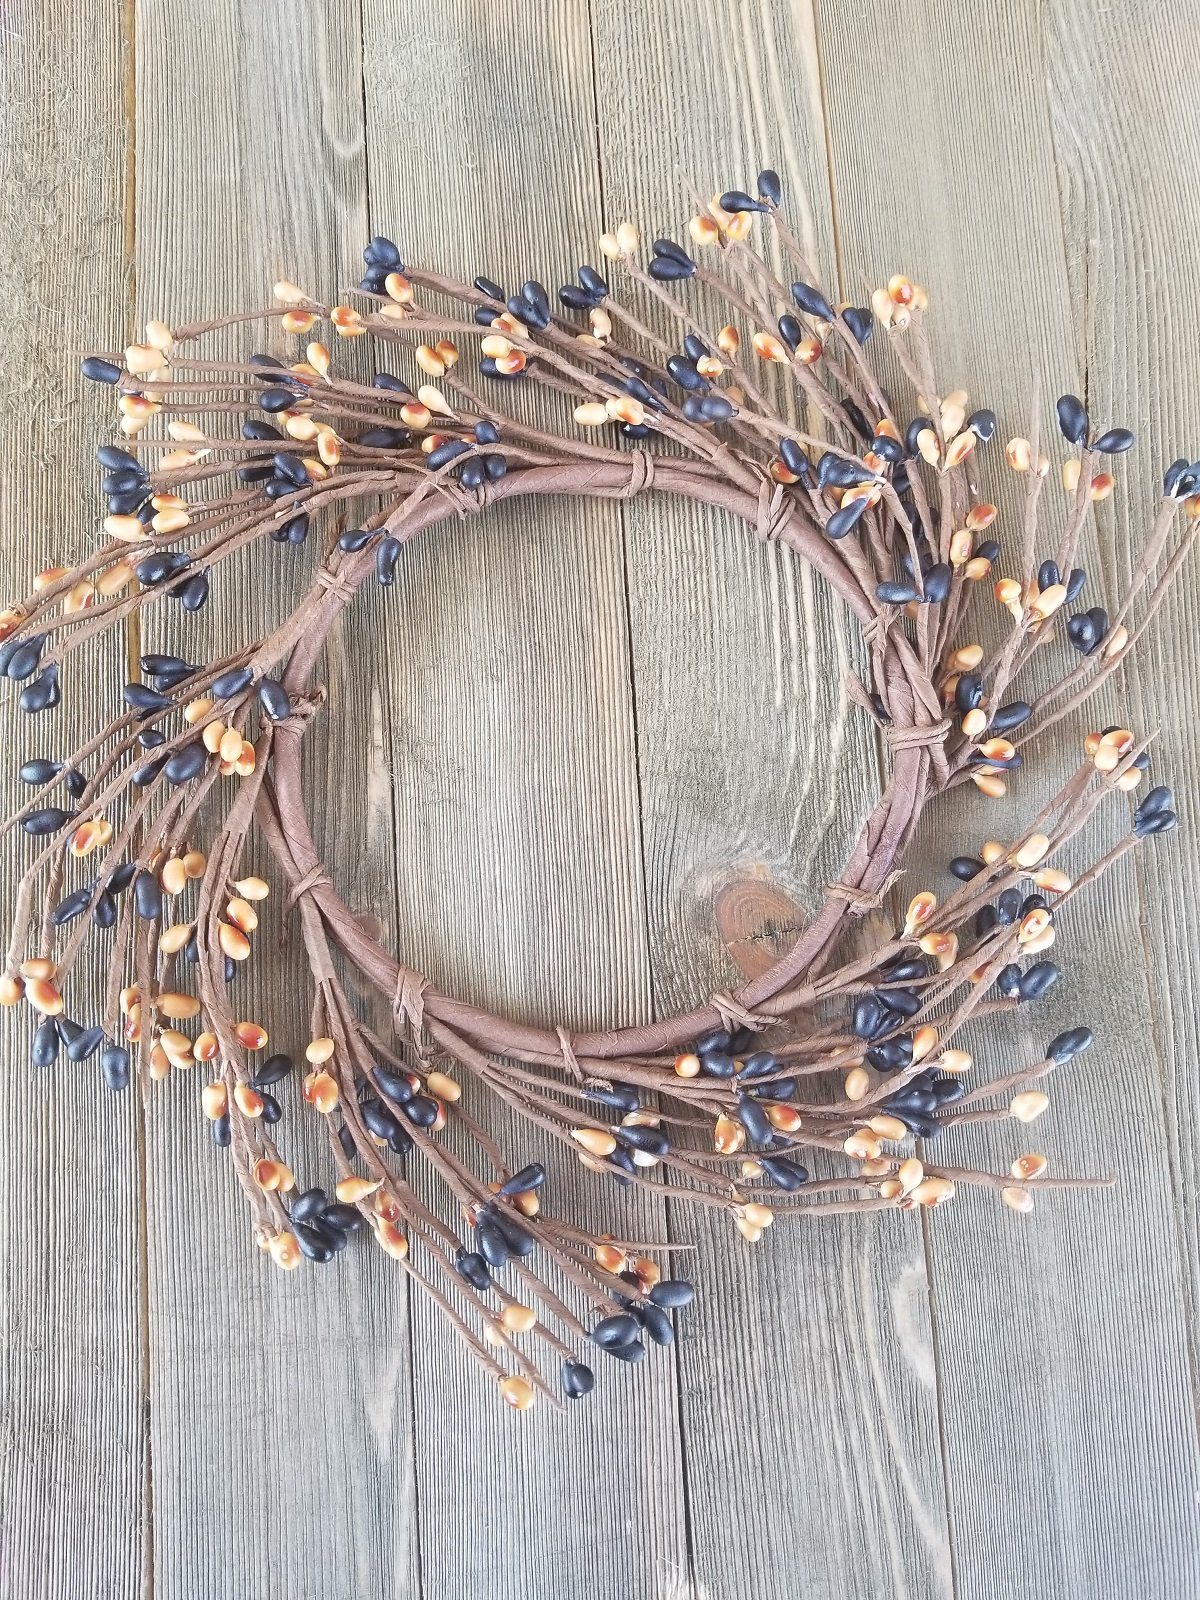 Black & Golden Brown Mini Wreath Or Candle Ring Country Primitive Floral Décor Perfect Candle Ring For 4'' Pillars (Wreath is 8'')